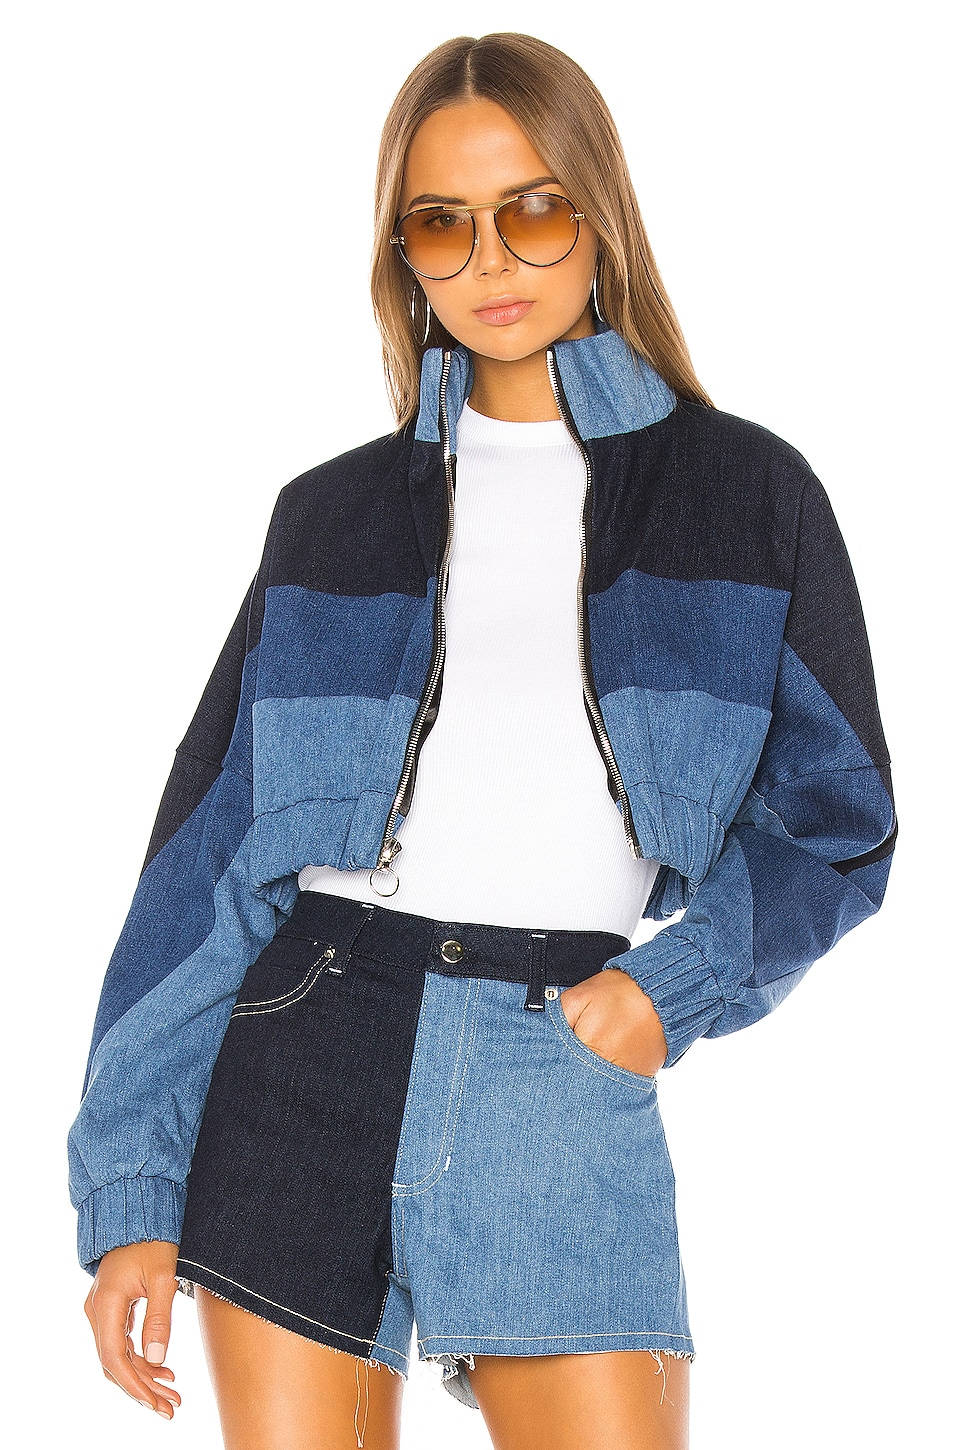 Frankie B Chloe Denim Track Jacket in Indigo